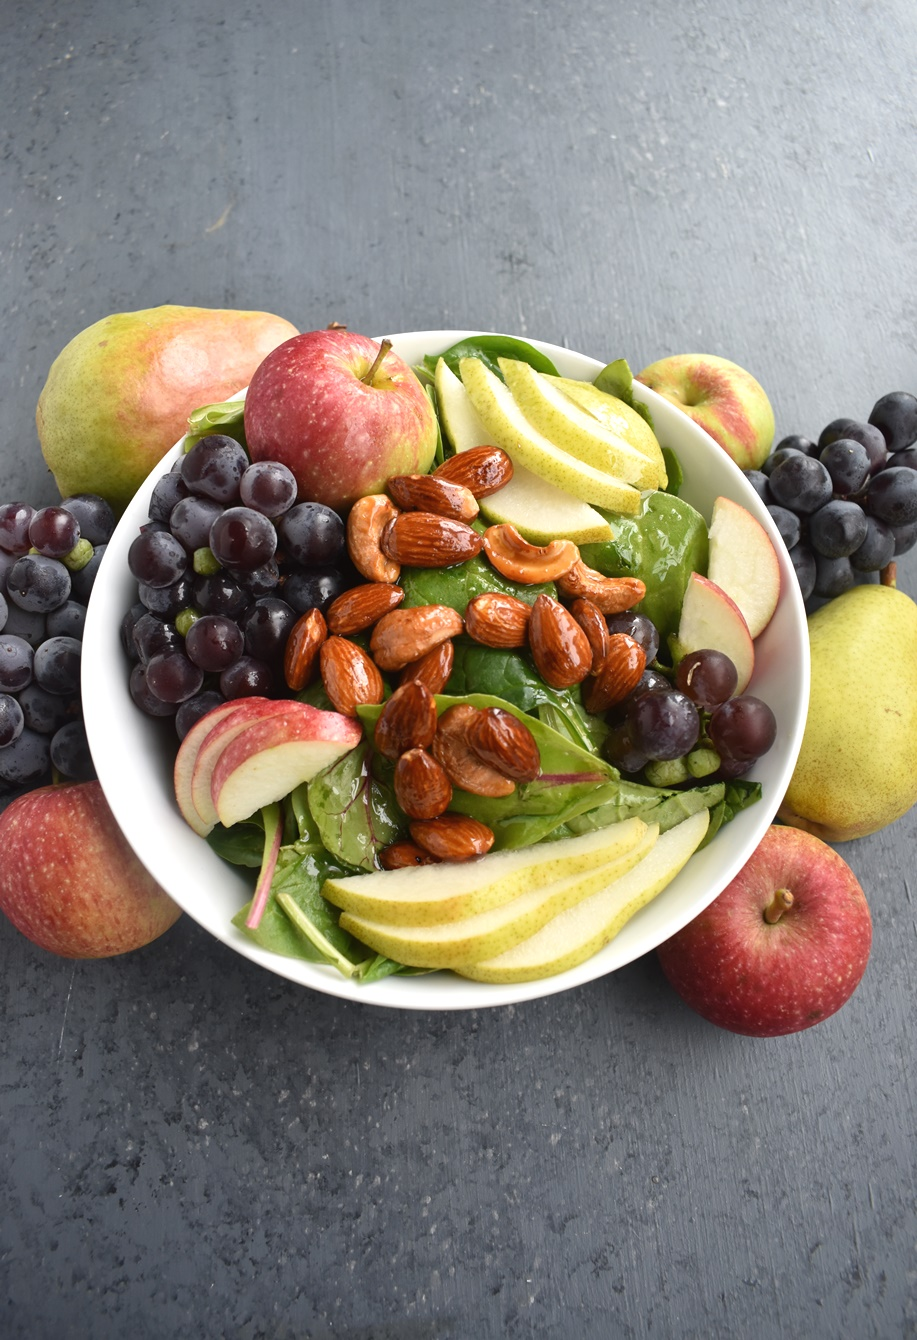 Harvest Salad with Apple Cider Vinaigrette is loaded with the season's best grapes, pears and apples along with honey candied almonds and cashews! #salad #healthy #cleaneating #fall #fallfood #harvest #apples #grapes #pears #nuts